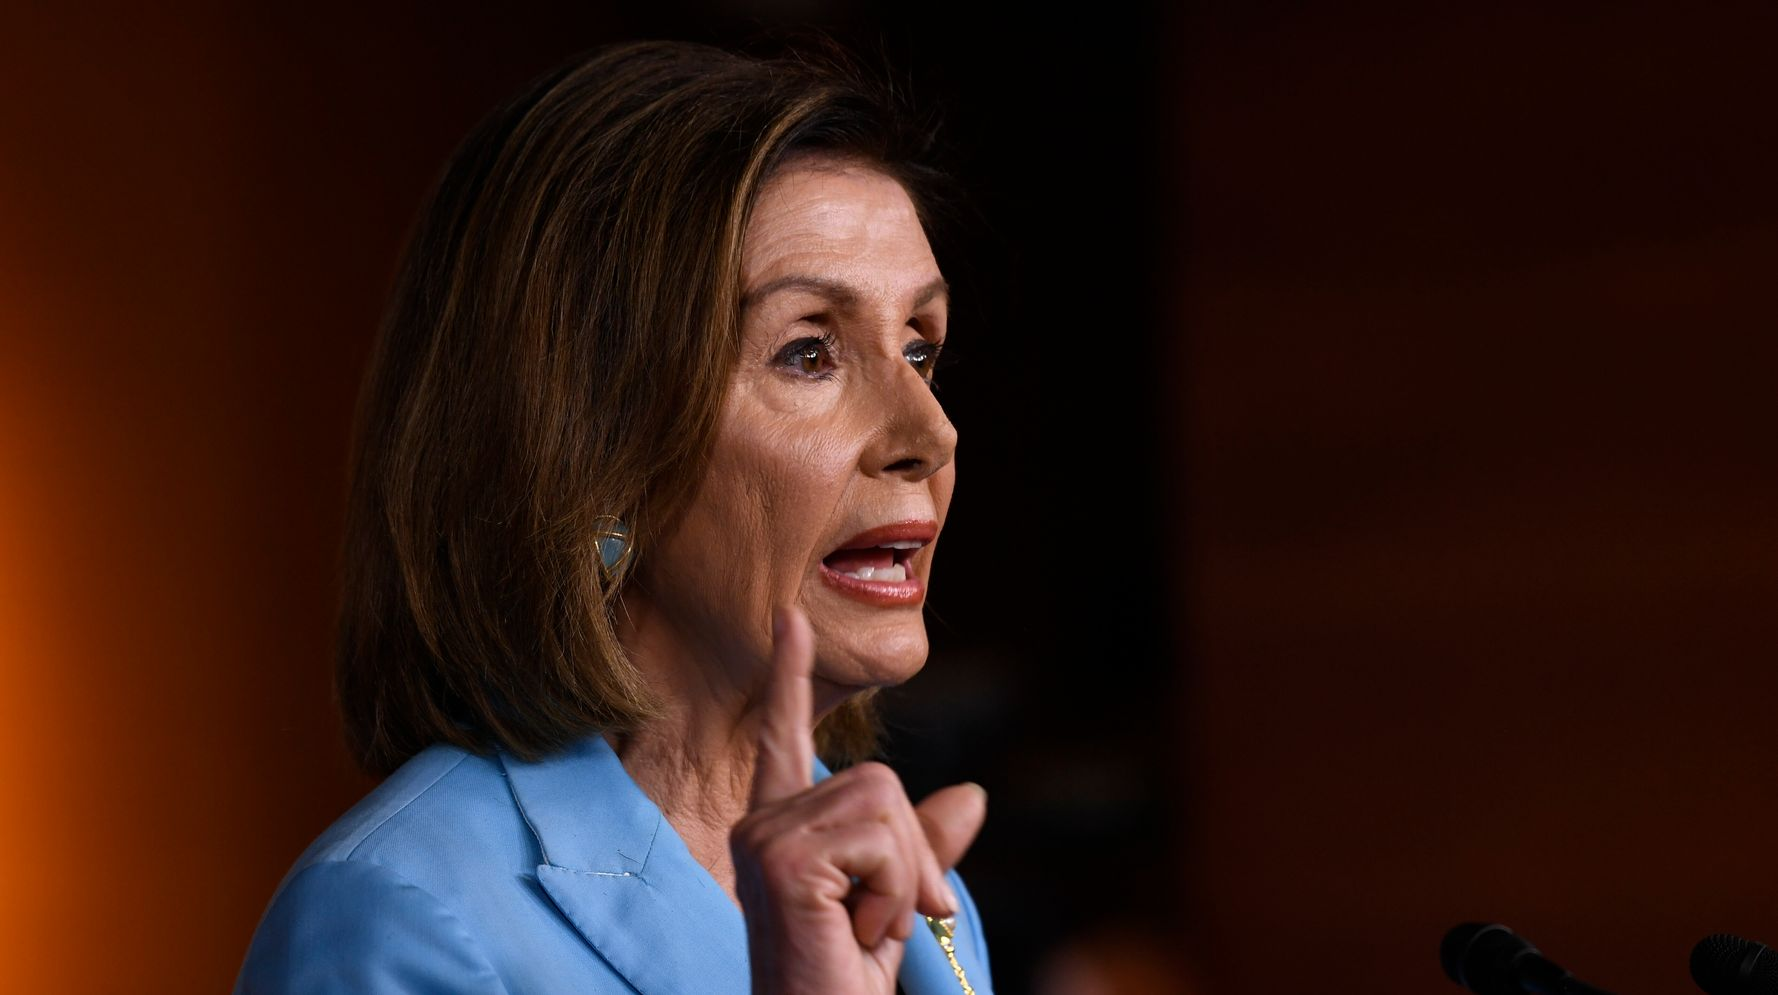 Westlake Legal Group 5d9d2de4210000a807ac8a21 Nancy Pelosi Calls Trump's Bluff: 'You Are Not Above The Law'